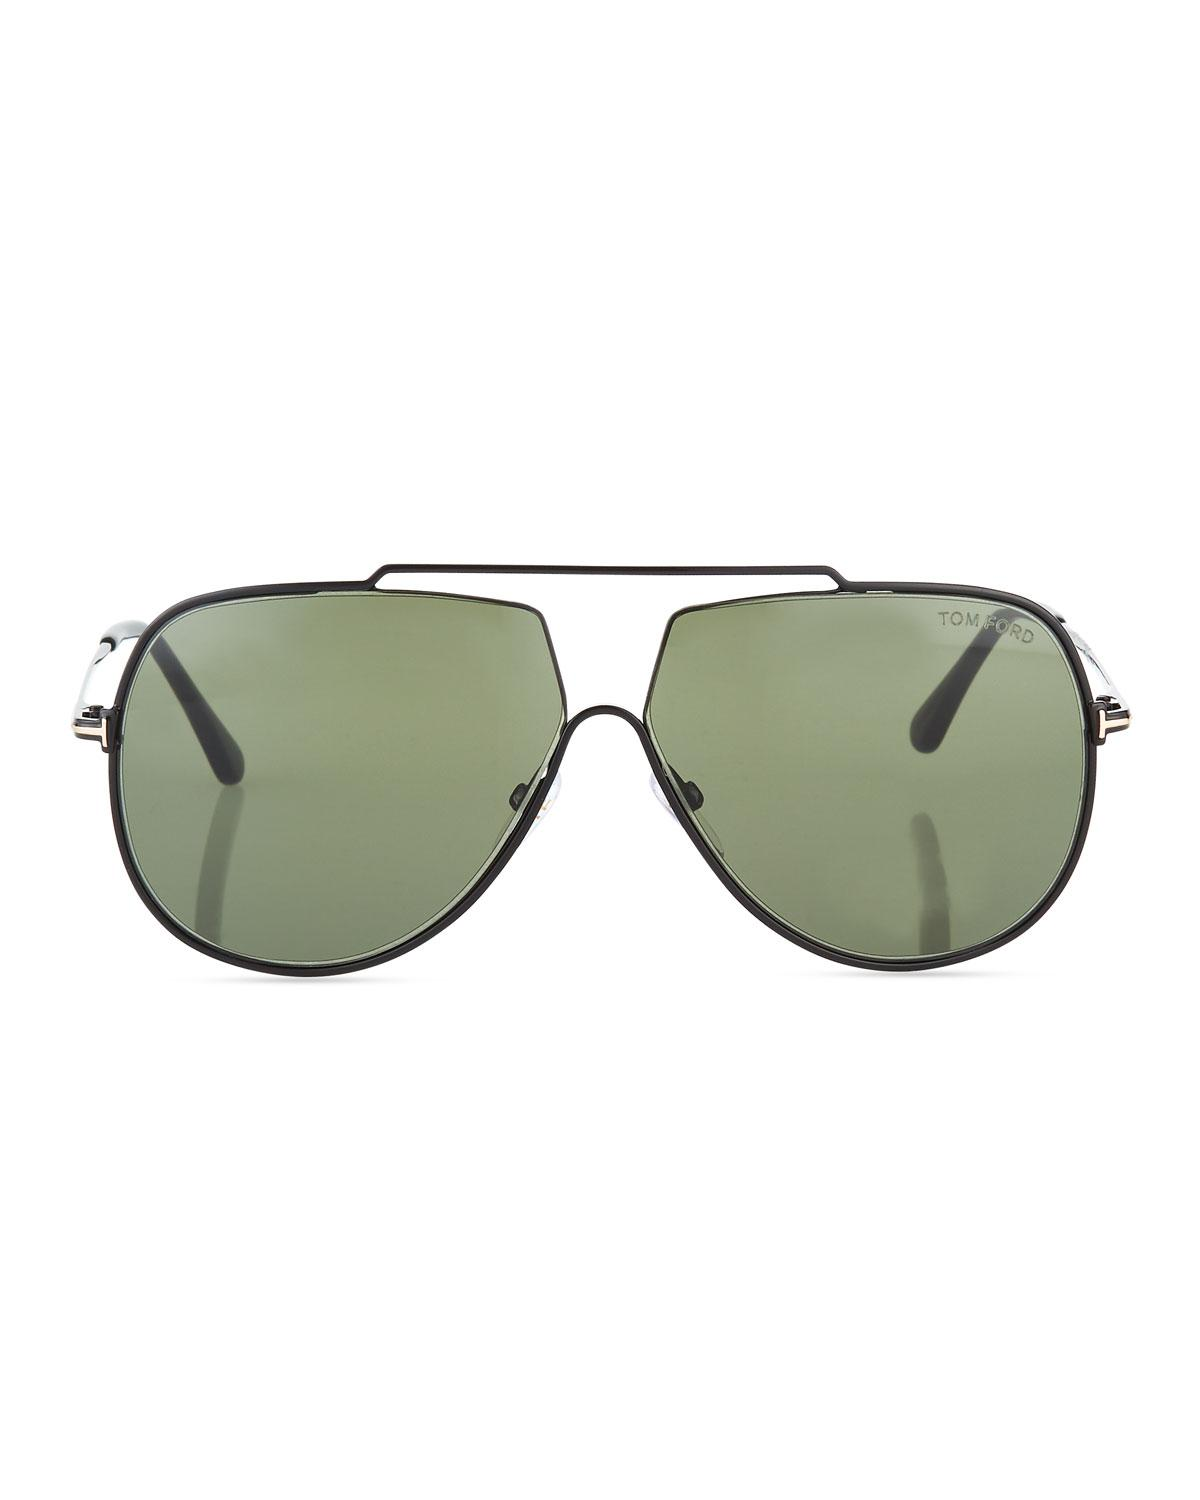 d91bed9998f7 Lyst - Tom Ford Chase Double-bar Aviator Sunglasses in Green for Men